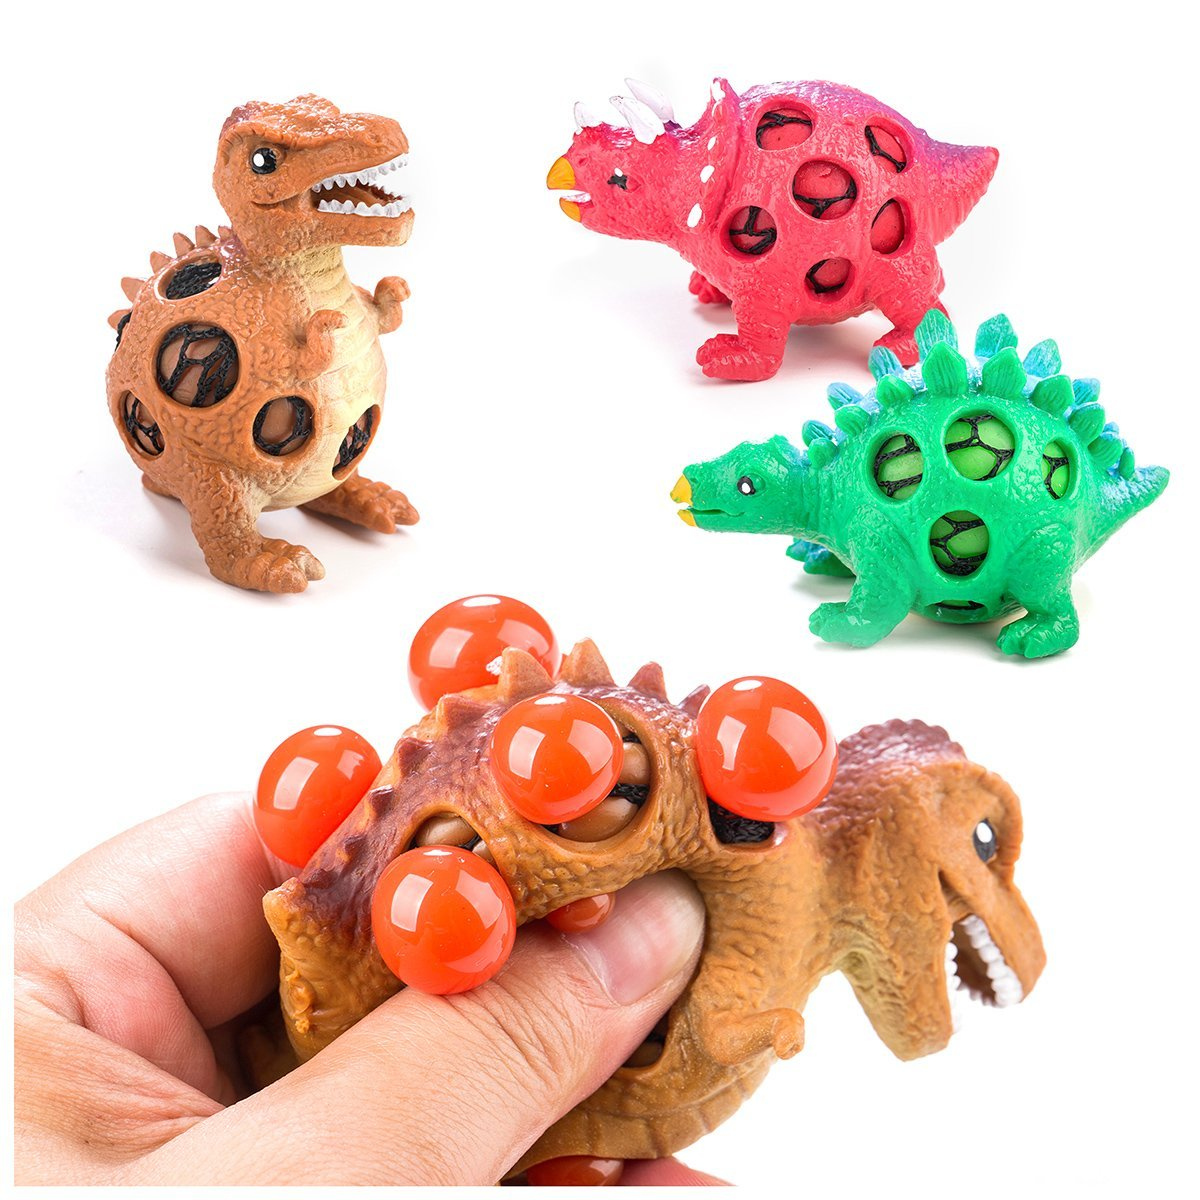 Dinosaur Stress Relief Toys Kids Adults: Best Dinosaur Squeeze Toy Stress Reduction- 3 Dinosaur Stress Balls in 1 Pack Idea, Adorable Party Favor, Fun & Soft Novelty Pressure